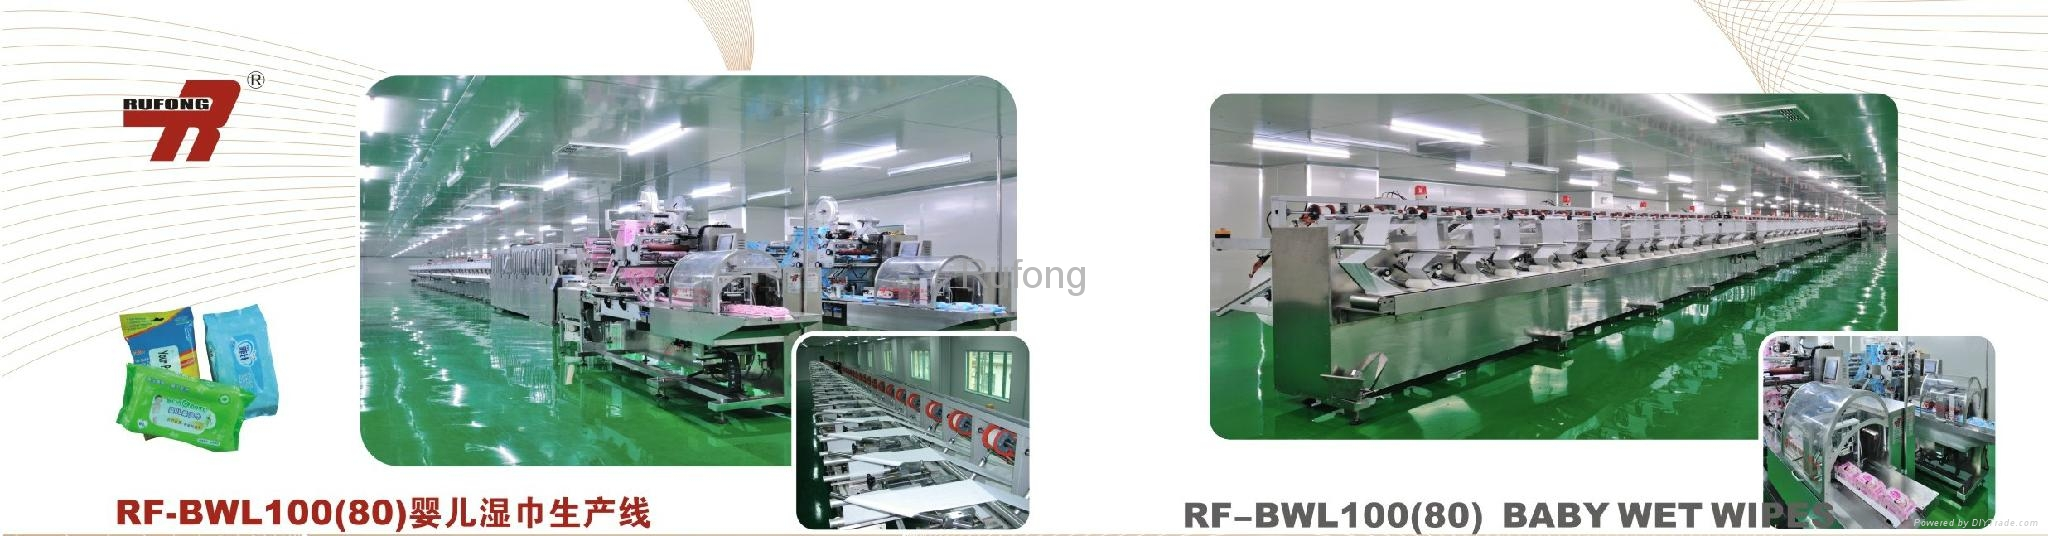 RF-BWL100(80) Baby Wet Wipes Production Line 4